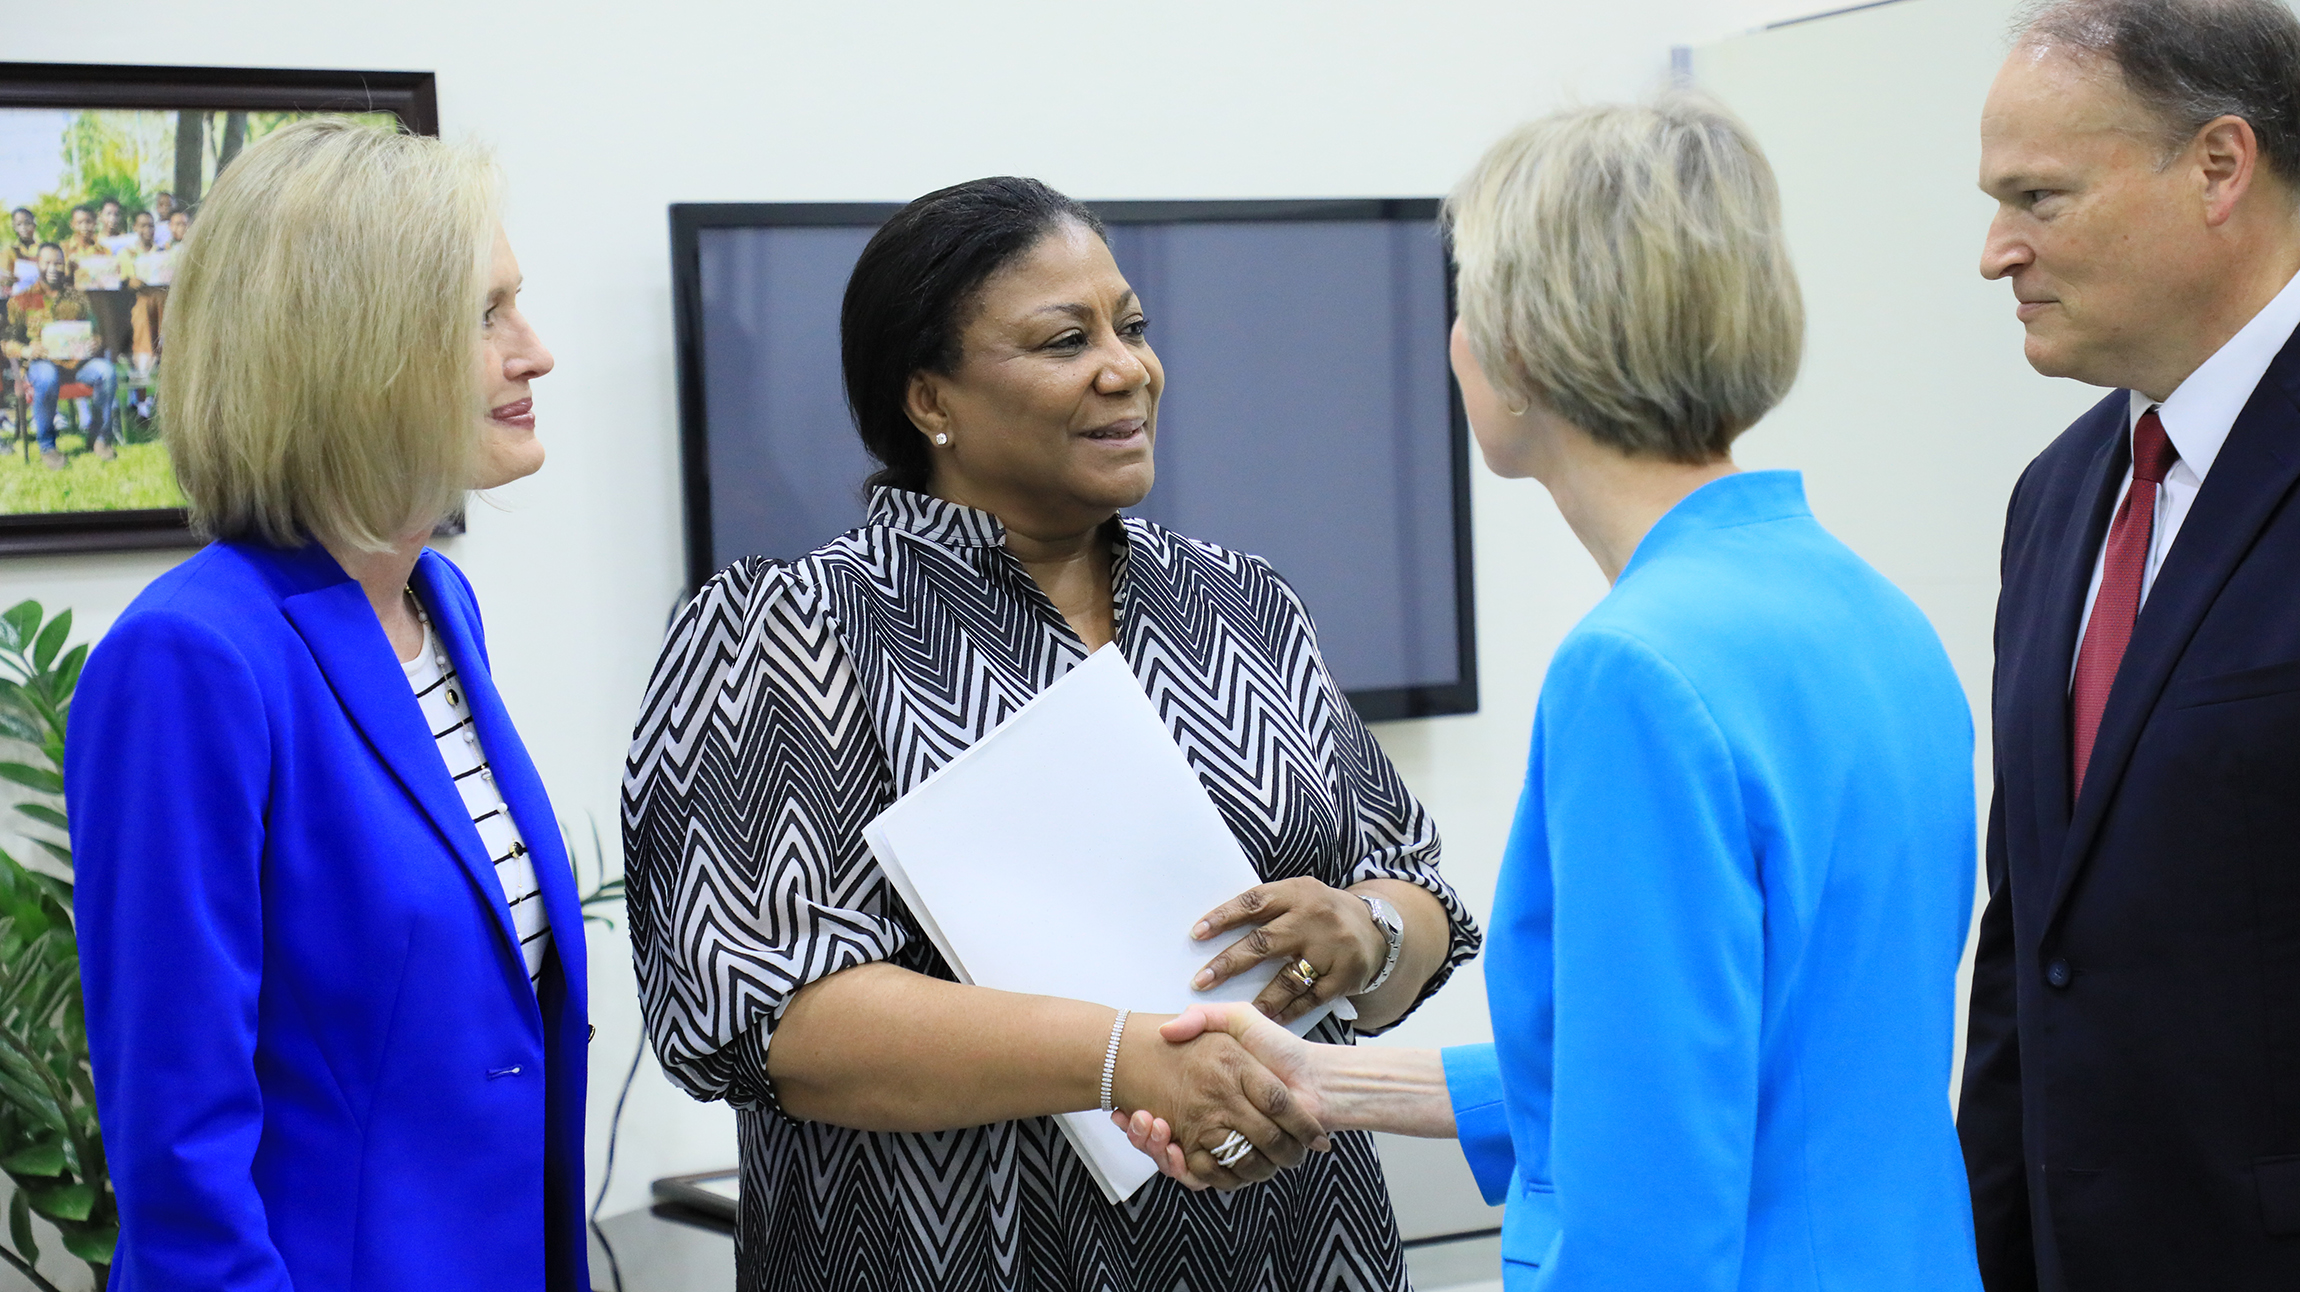 Sister Jean B. Bingham, right, greets Rebecca Naa Okaikor Akufo-Addo, the first lady of the Republic of Ghana, at North Ridge in Accra, Friday, March 1, 2019. Sister Bonnie H. Cordon, left, and Africa West Area President Elder Marcus B. Nash of the Seventy, far right, were also present.